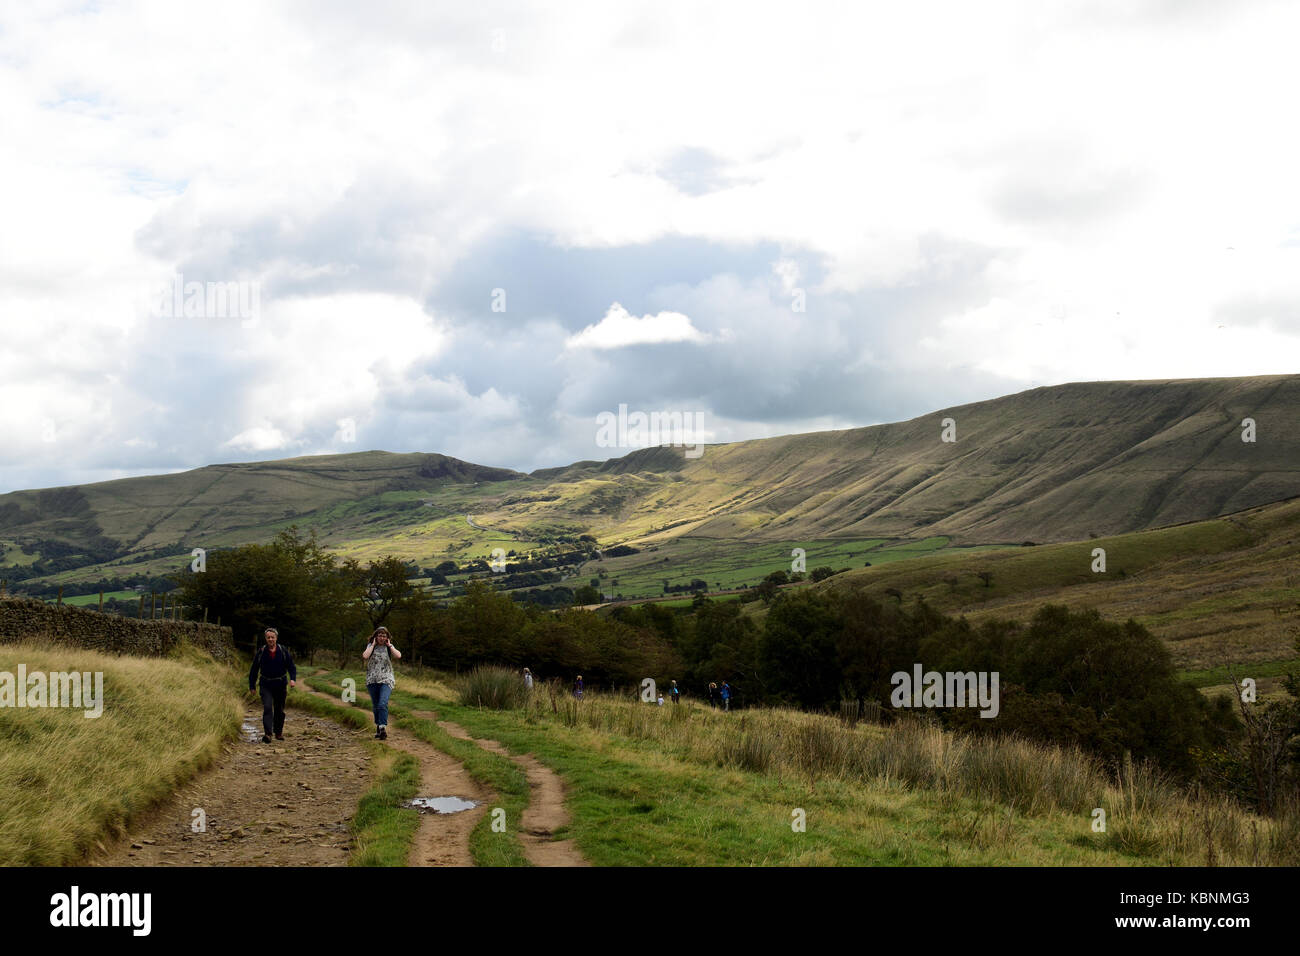 View back along the Pennine Way from the approach to Kinder Scout back towards Edale - Stock Image